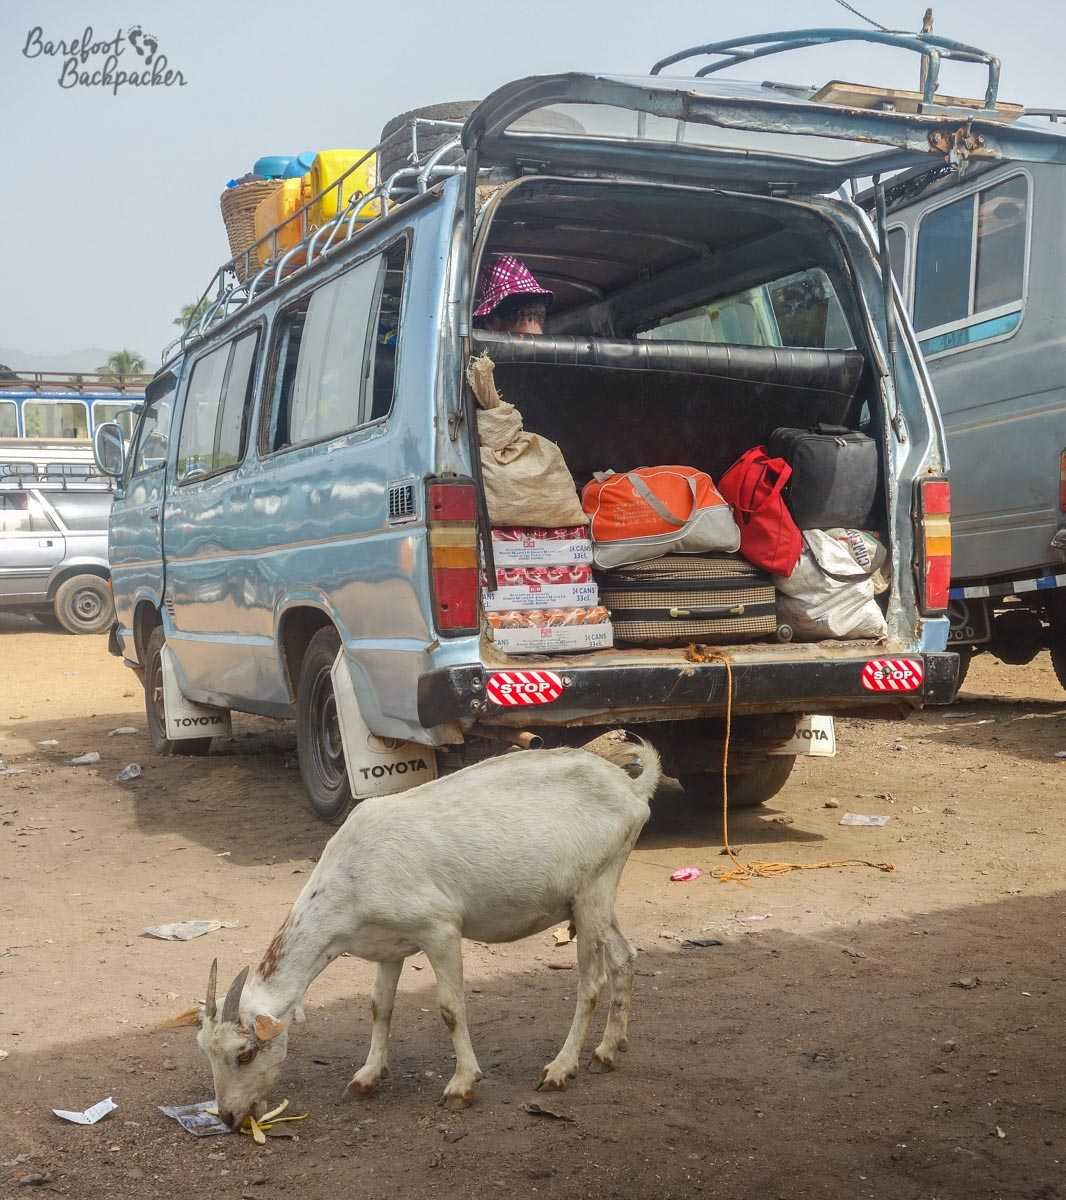 The minibus that took me from Kpalimé in Togo, to Ho in Ghana. The goat did not come with us.